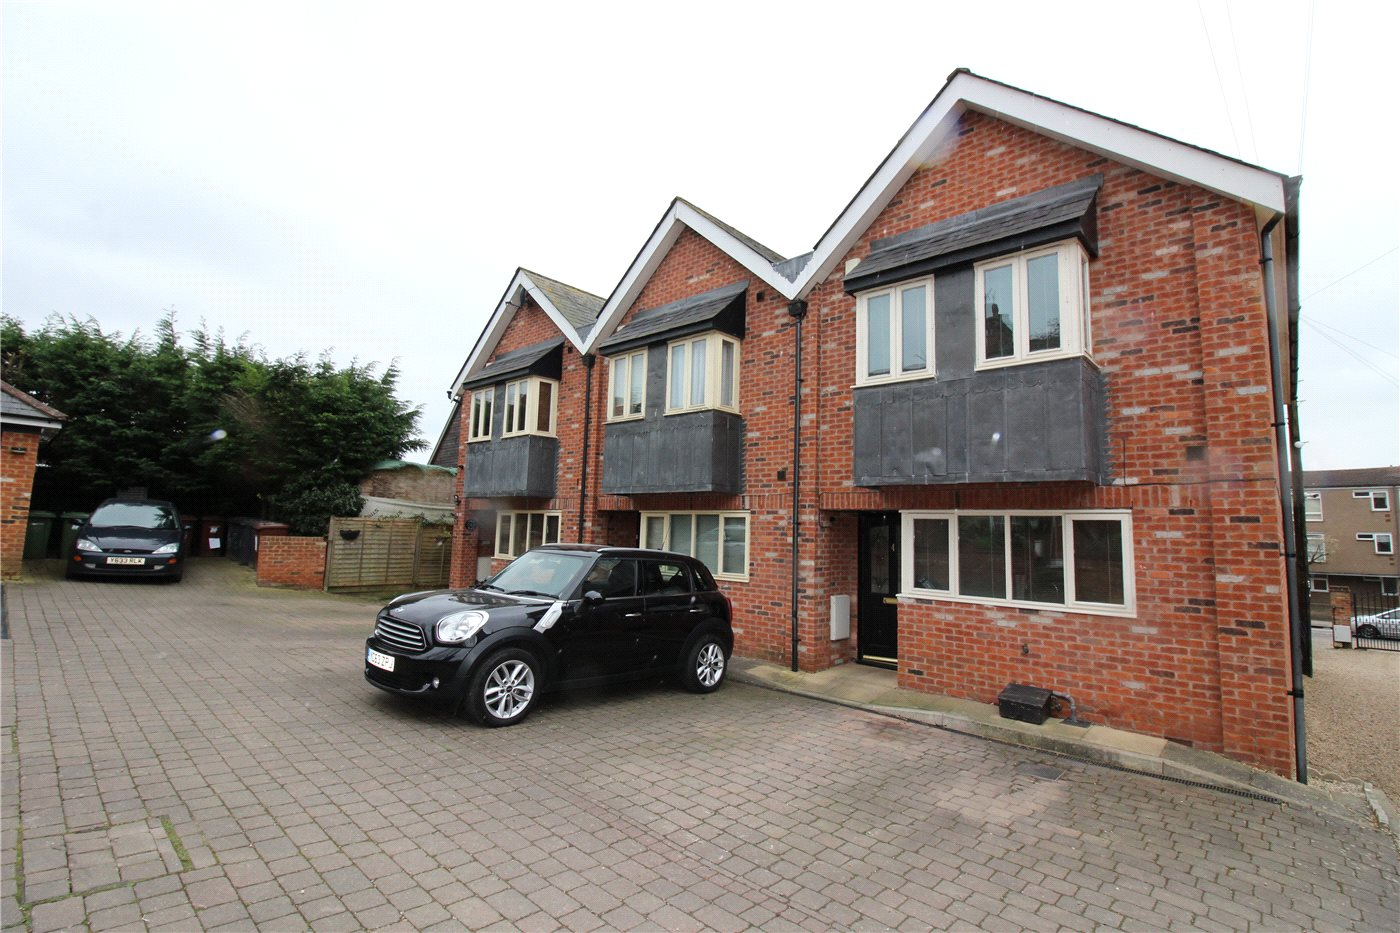 3 Bedrooms End Of Terrace House for sale in Forge Place, New Road, Elstree, Borehamwood, WD6